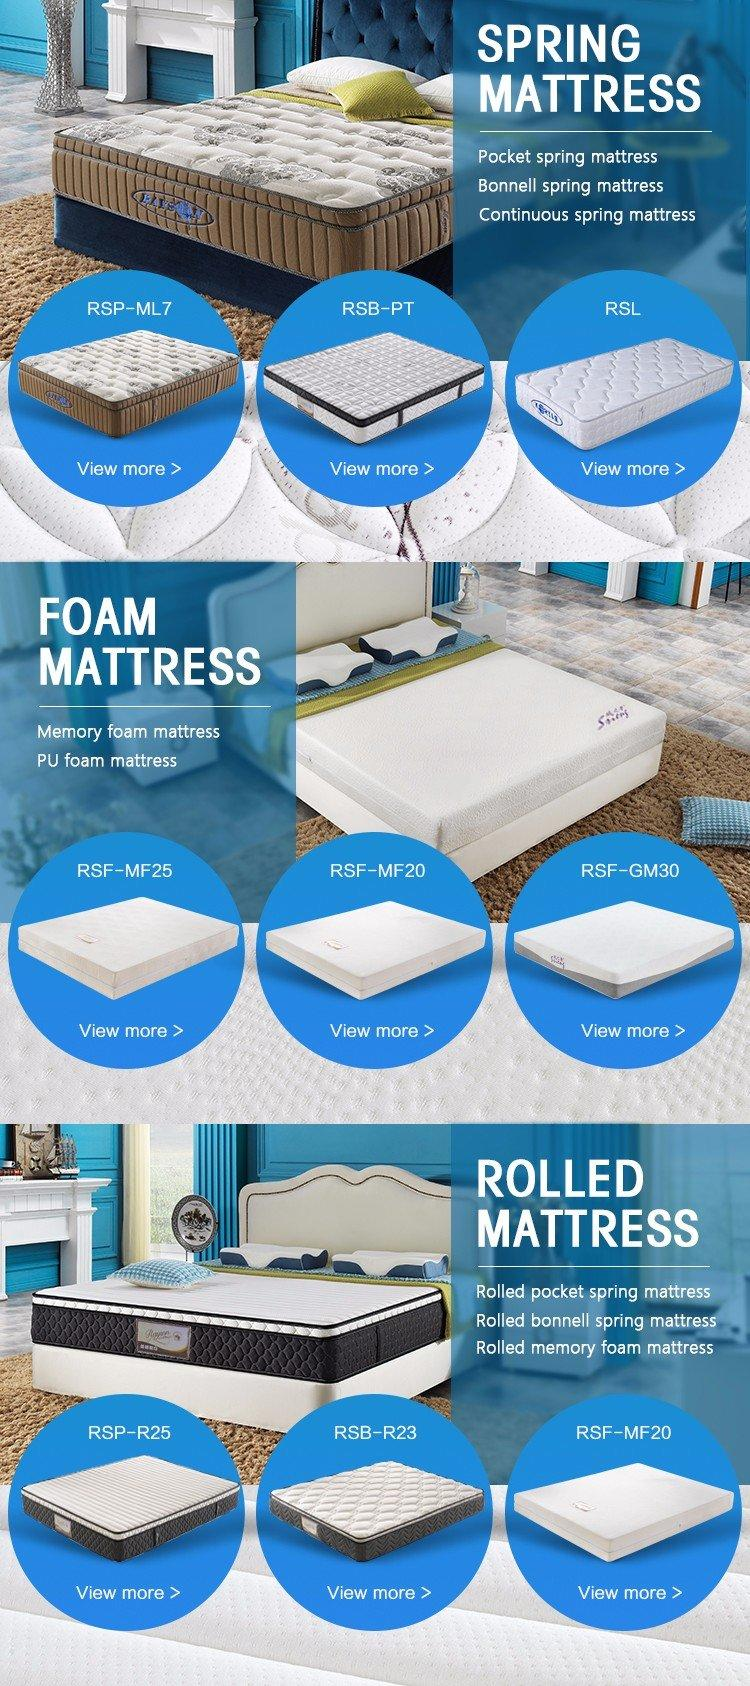 Rayson Mattress Best is pocket spring mattress good Suppliers